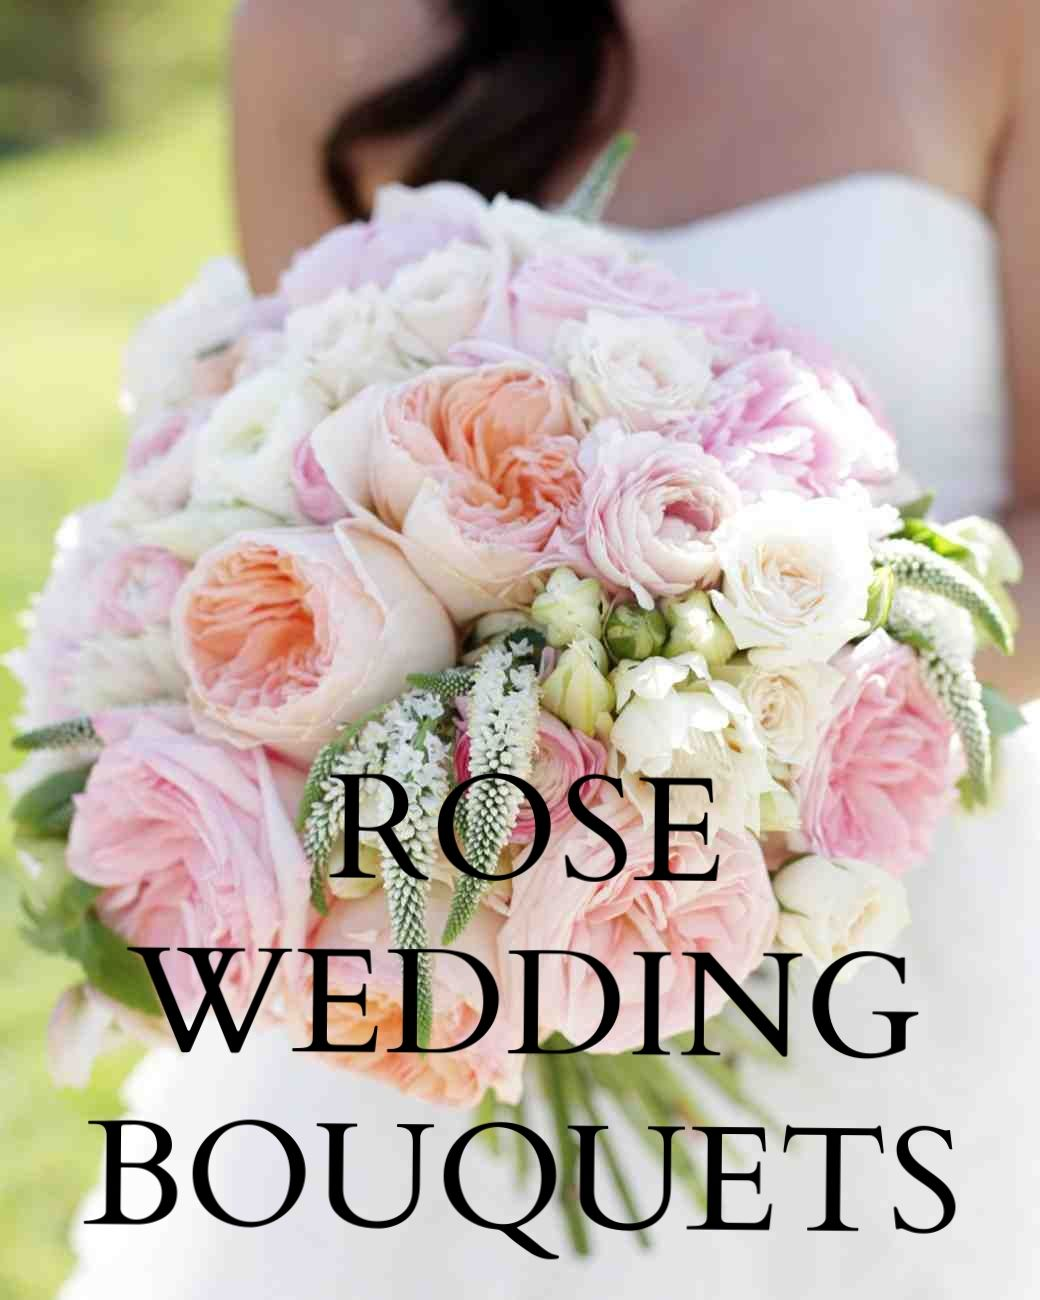 Our Favorite Rose Wedding Bouquets   Martha Stewart Weddings - Several types of garden roses, along with peonies, ranunculus, hellebores, spray roses, and Veronica, made up this pink posy.